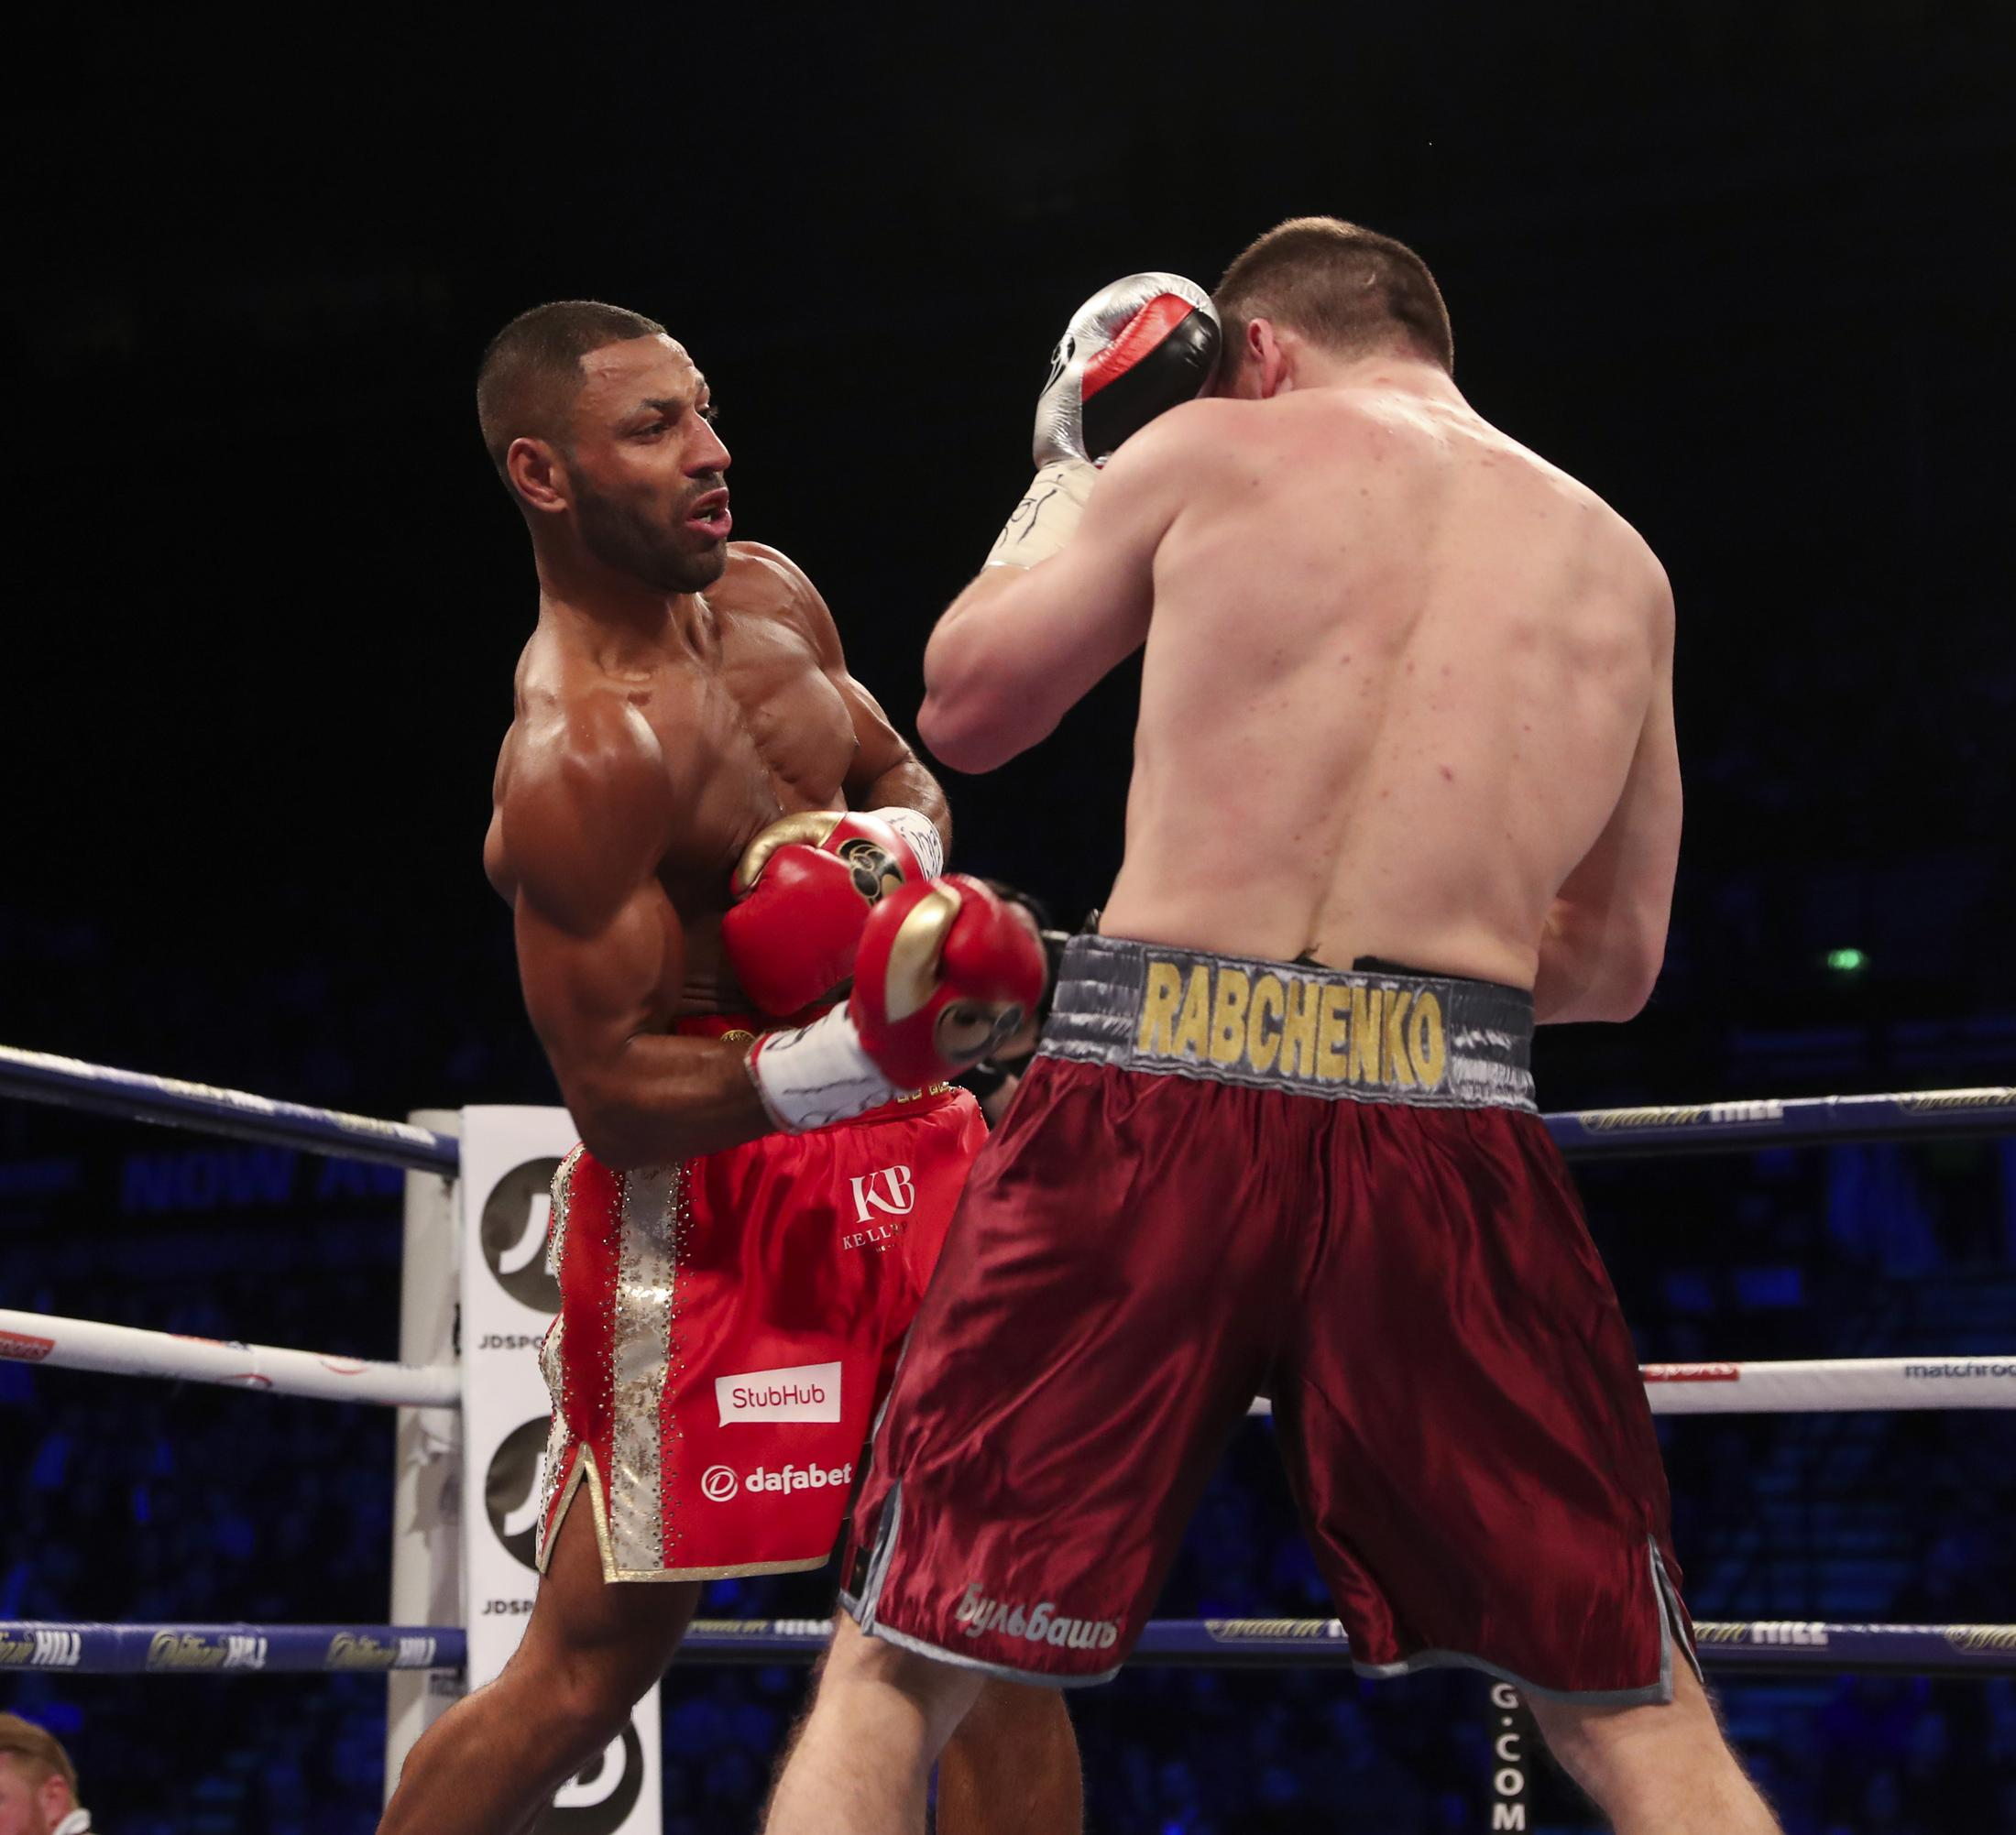 Kell Brook ended Sergey Rabchenko's night very early in March